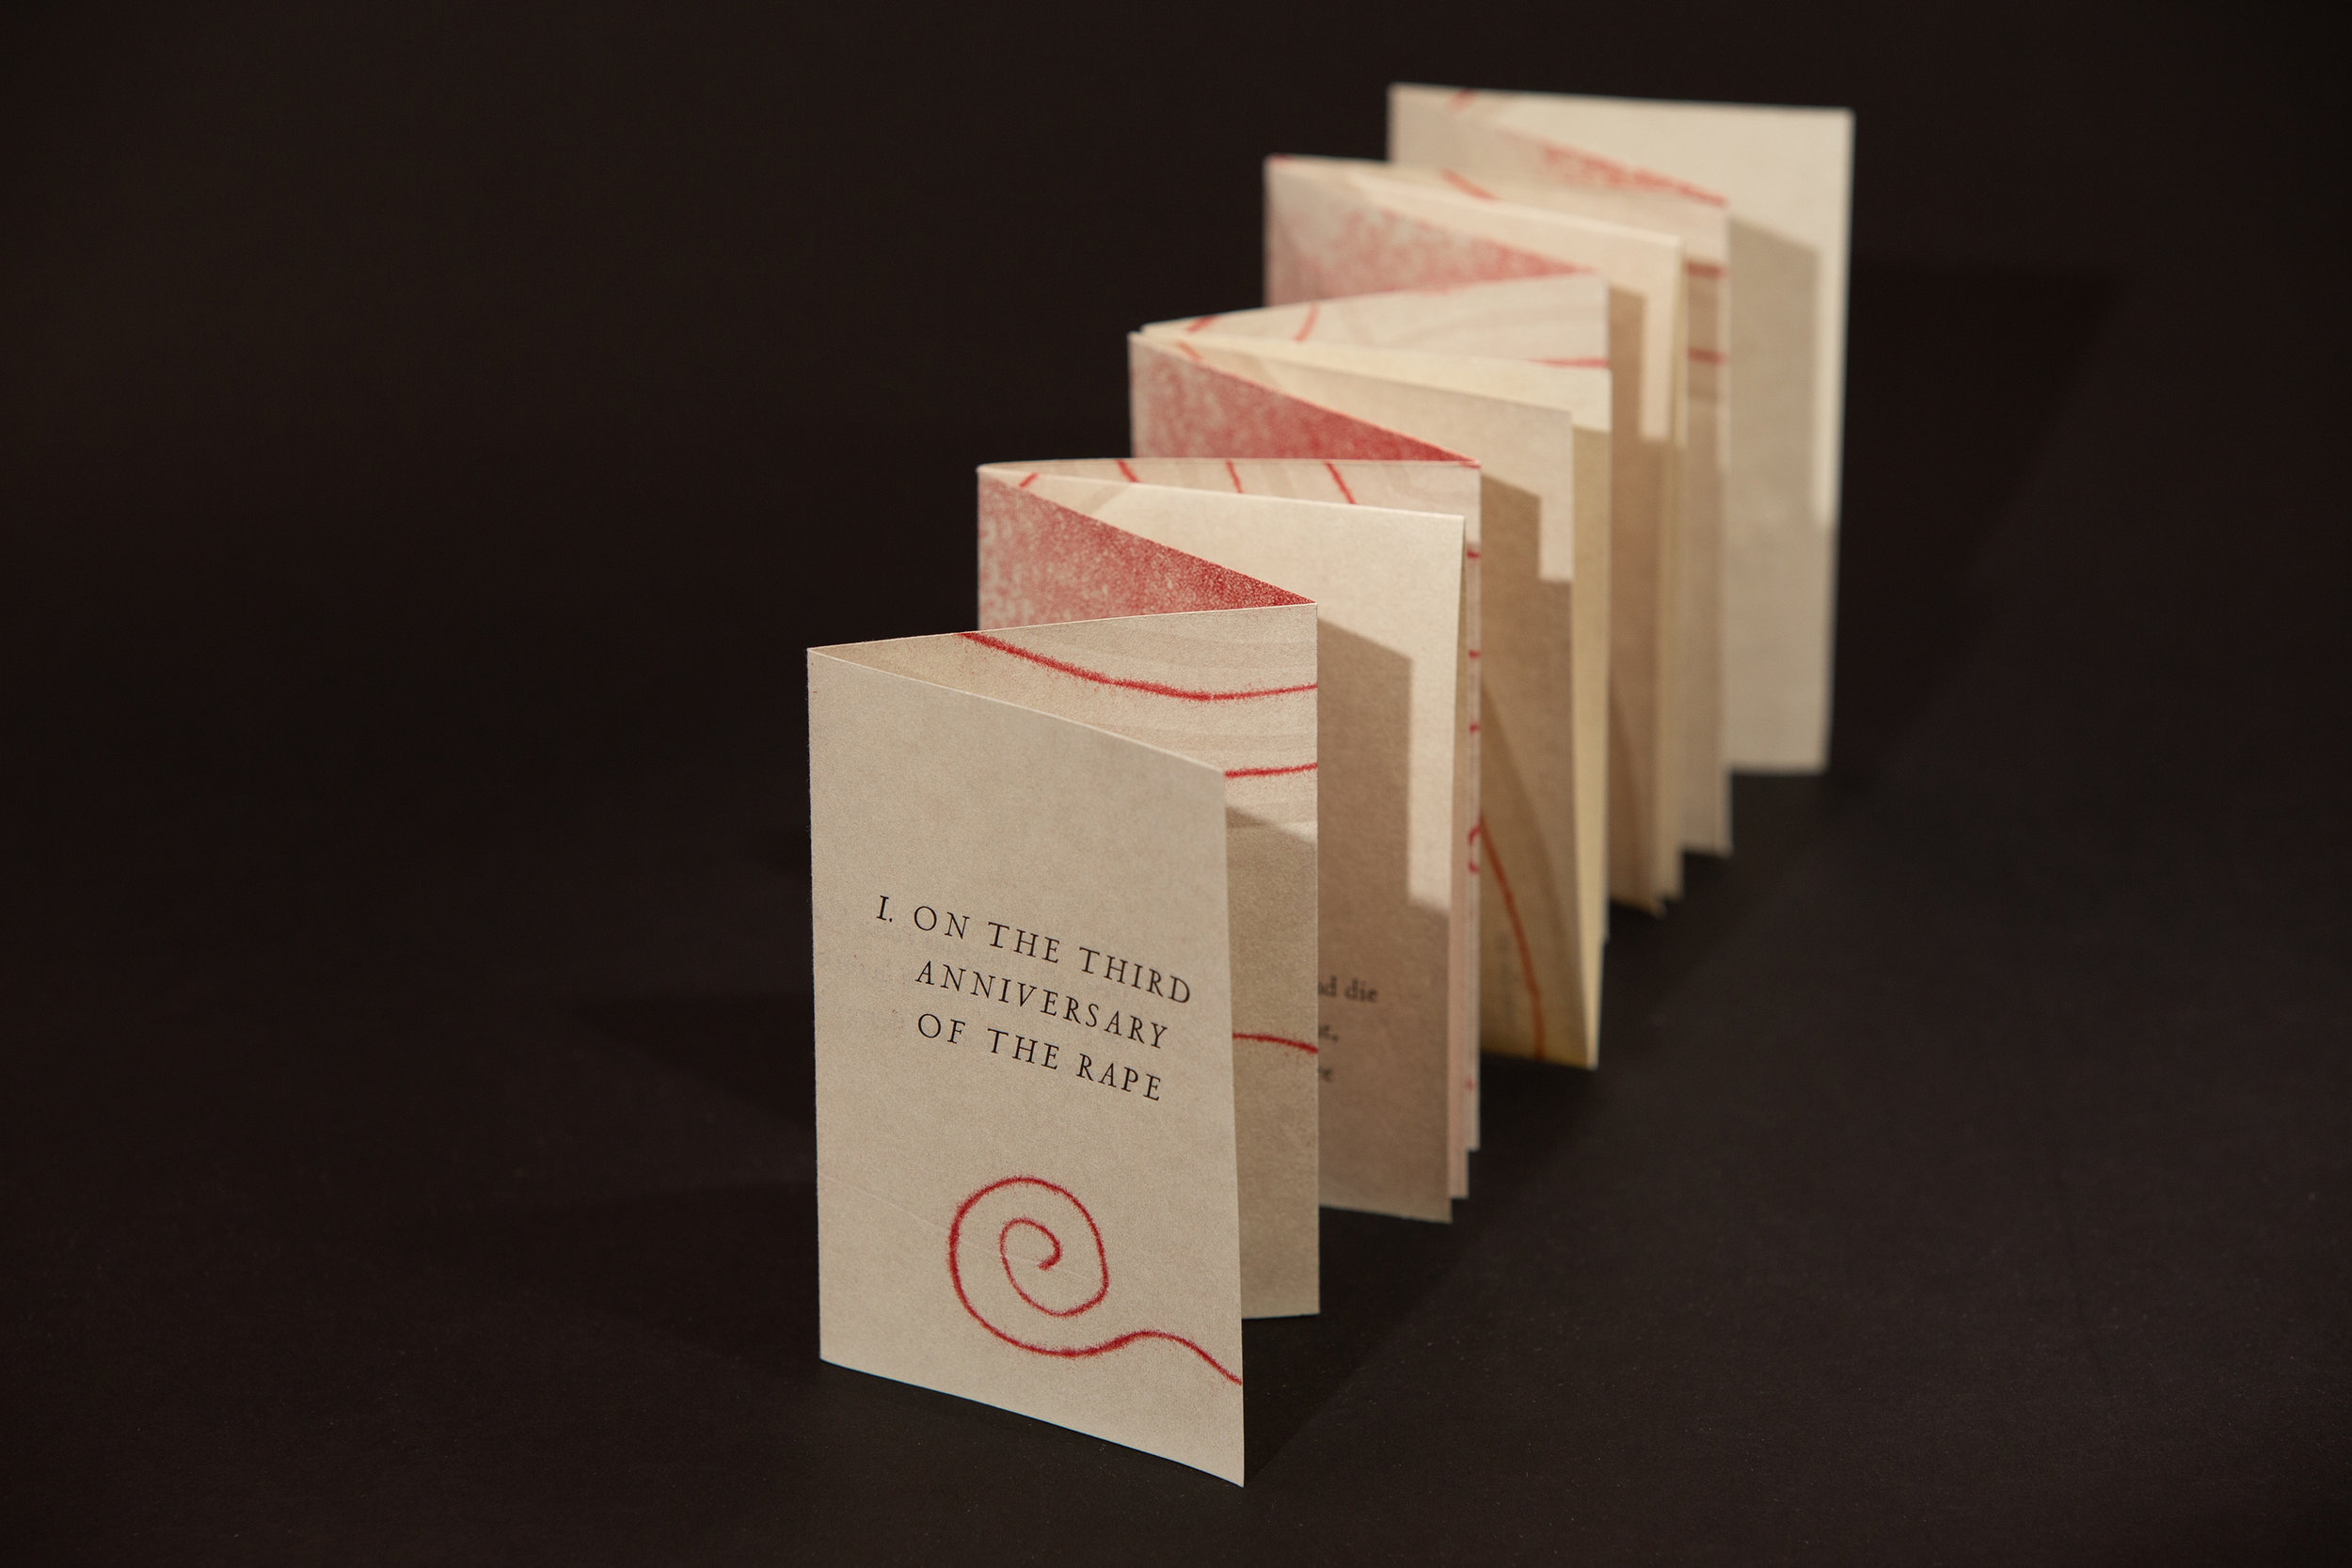 """The Red Thread Cycle"" (2018), Shivanee Ramlochan + Sonia Farmer, letterpress-printed books with recorded reading (Edition of 20), dimensions variable. Collection of the artists. Image courtesy of Dominic Duncombe."